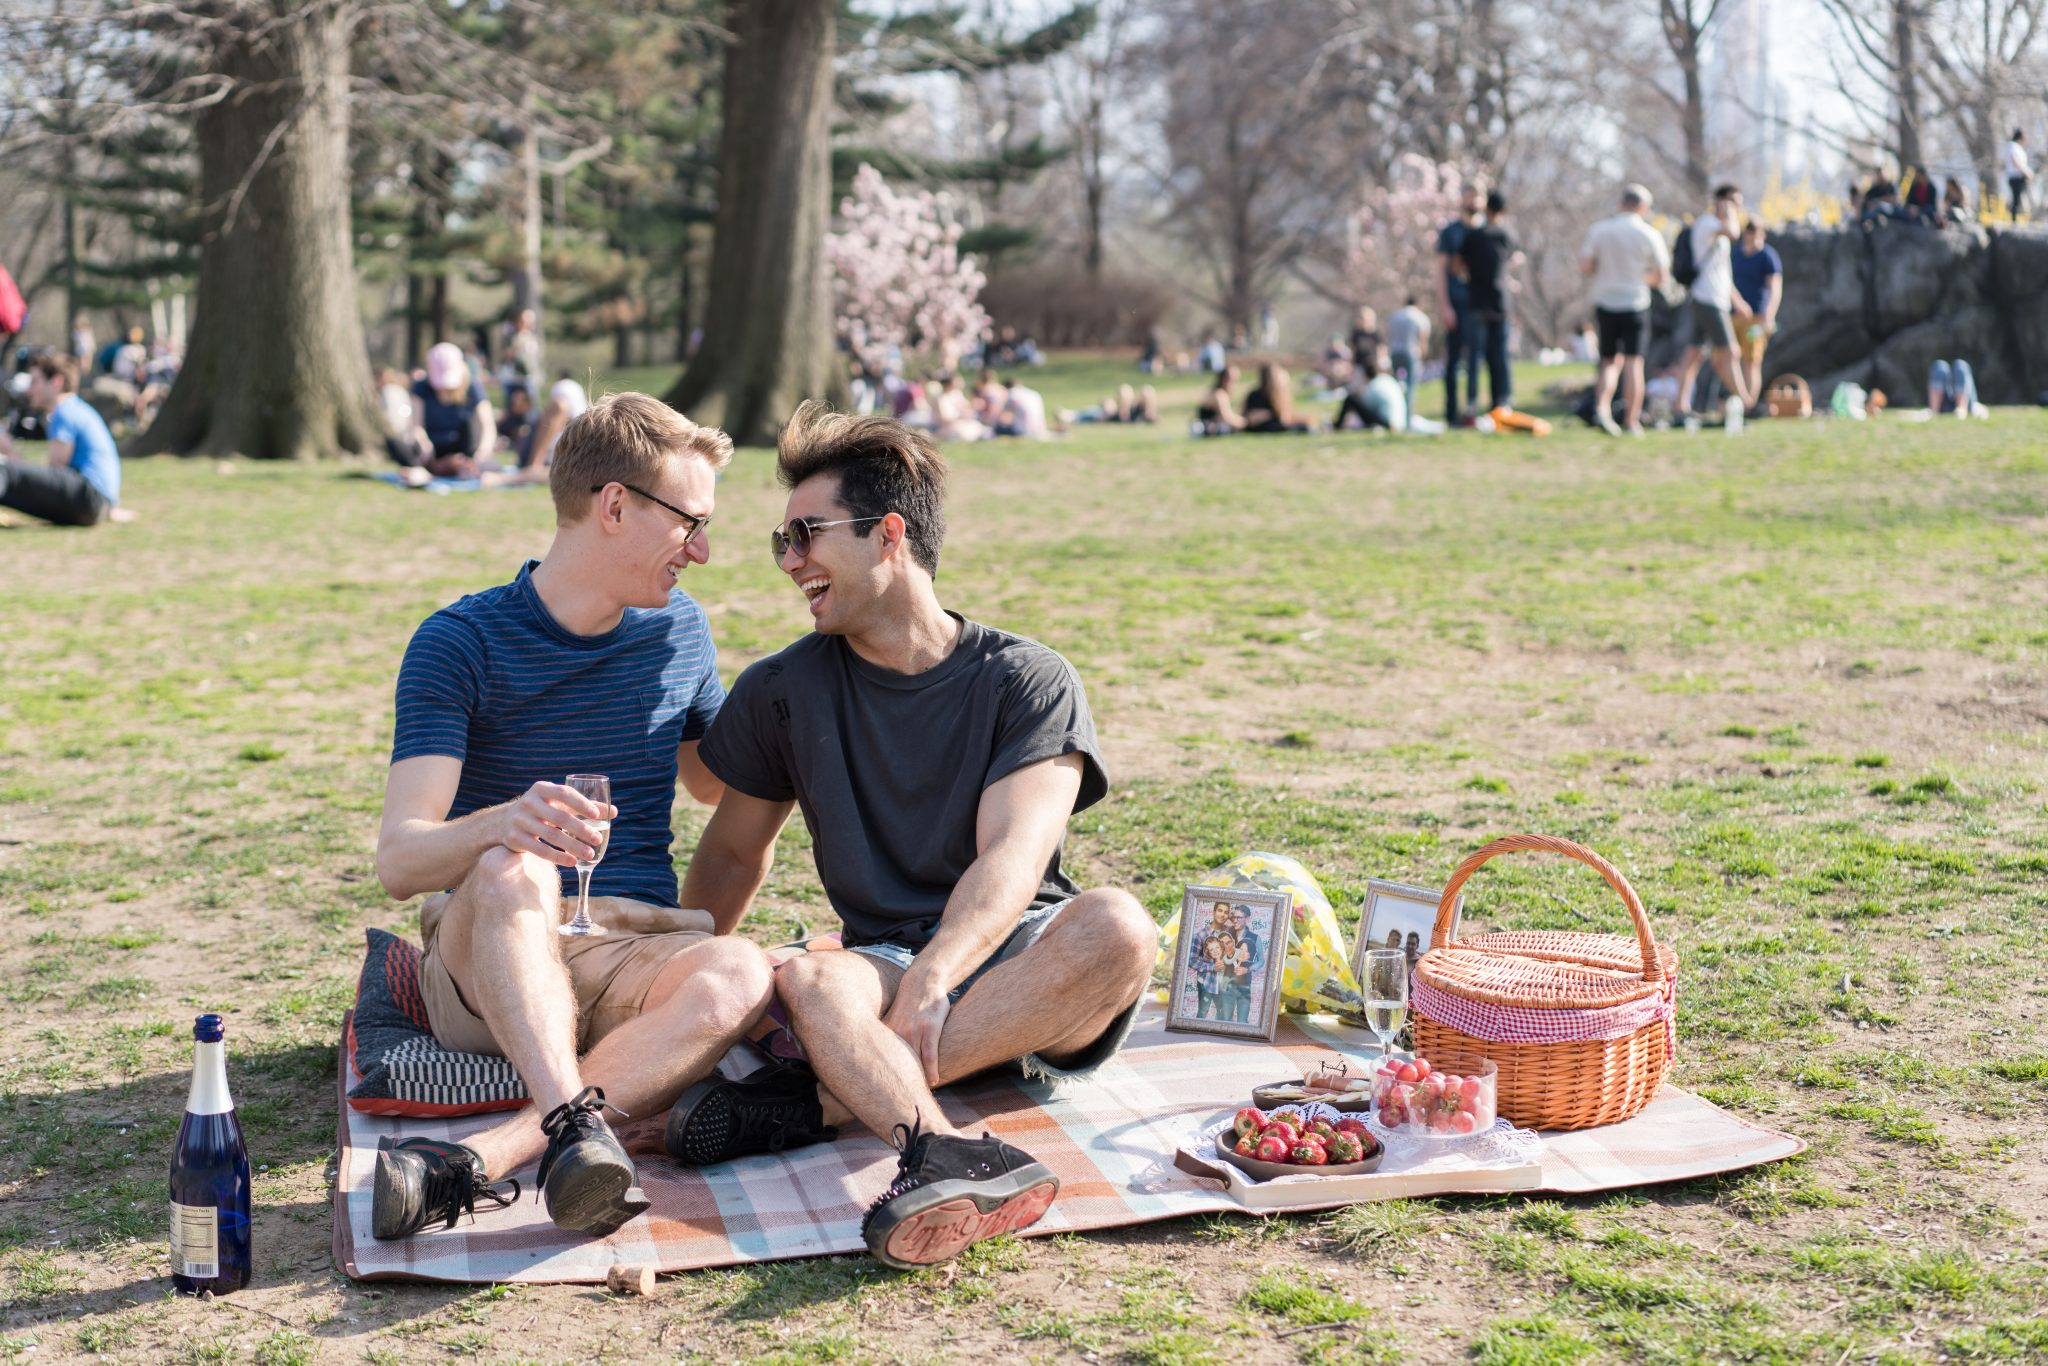 Ideas for a picnic proposal in NYC